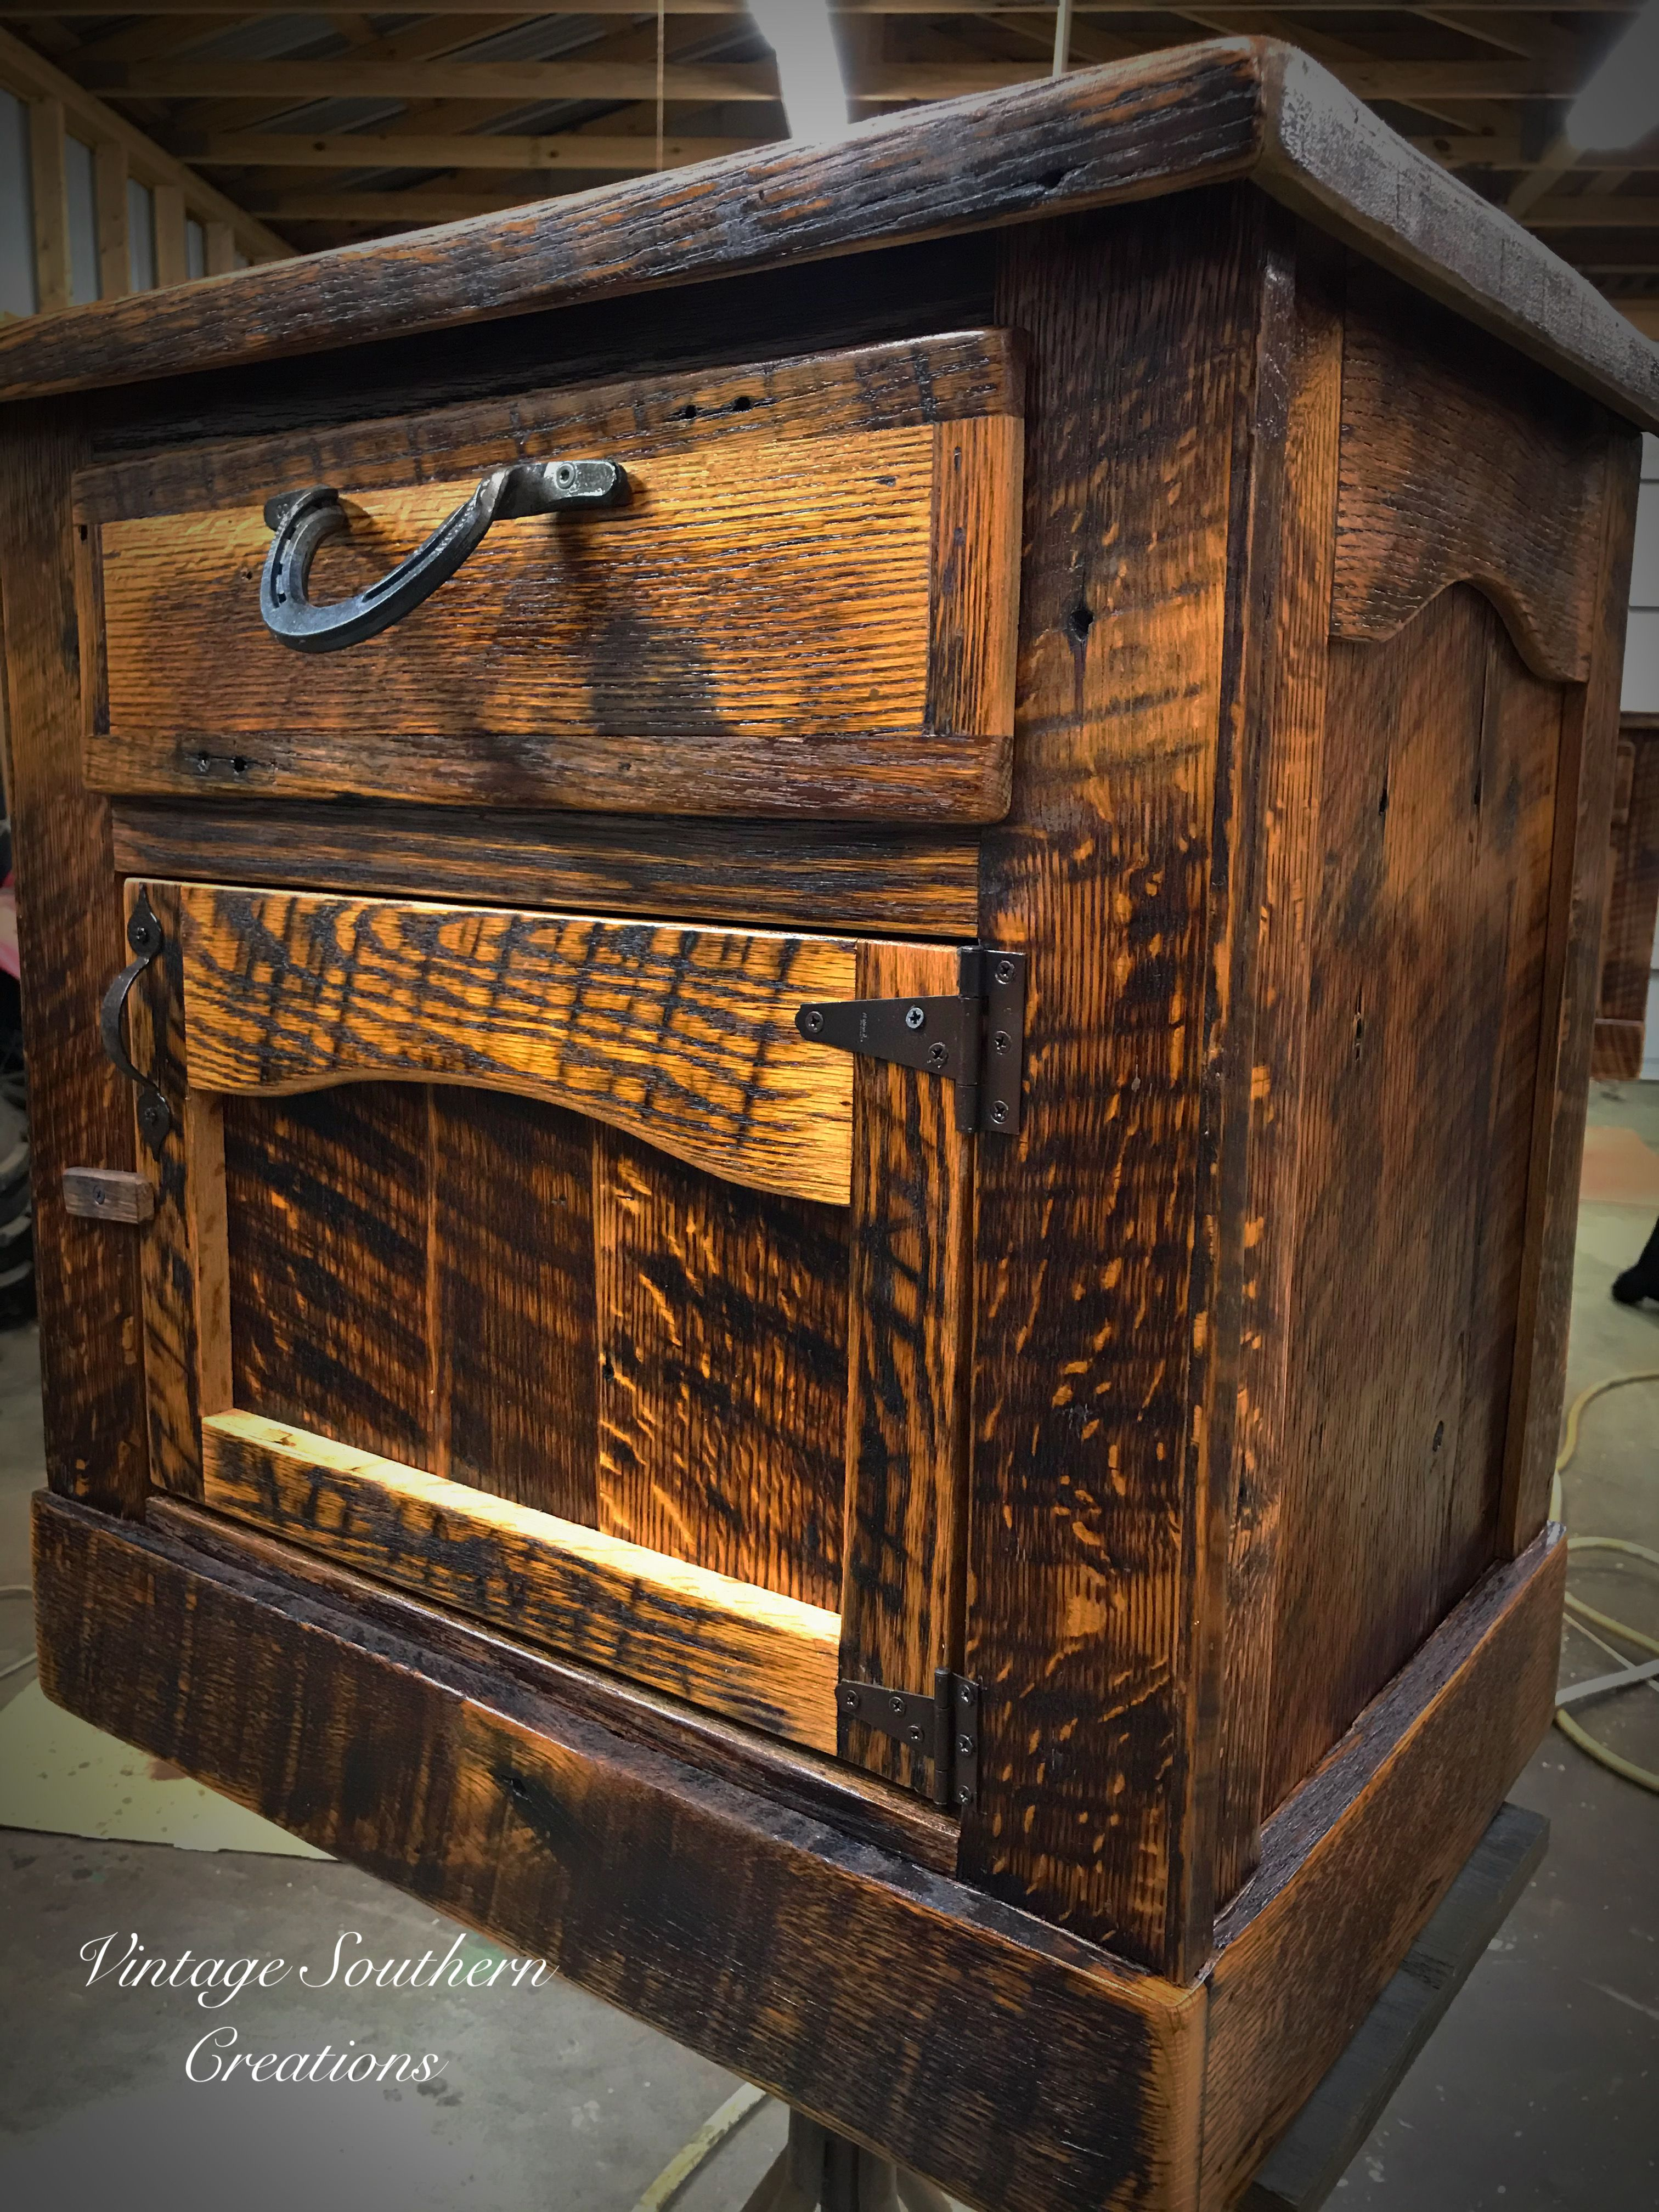 Nightstand built by vintage southern creations rustic